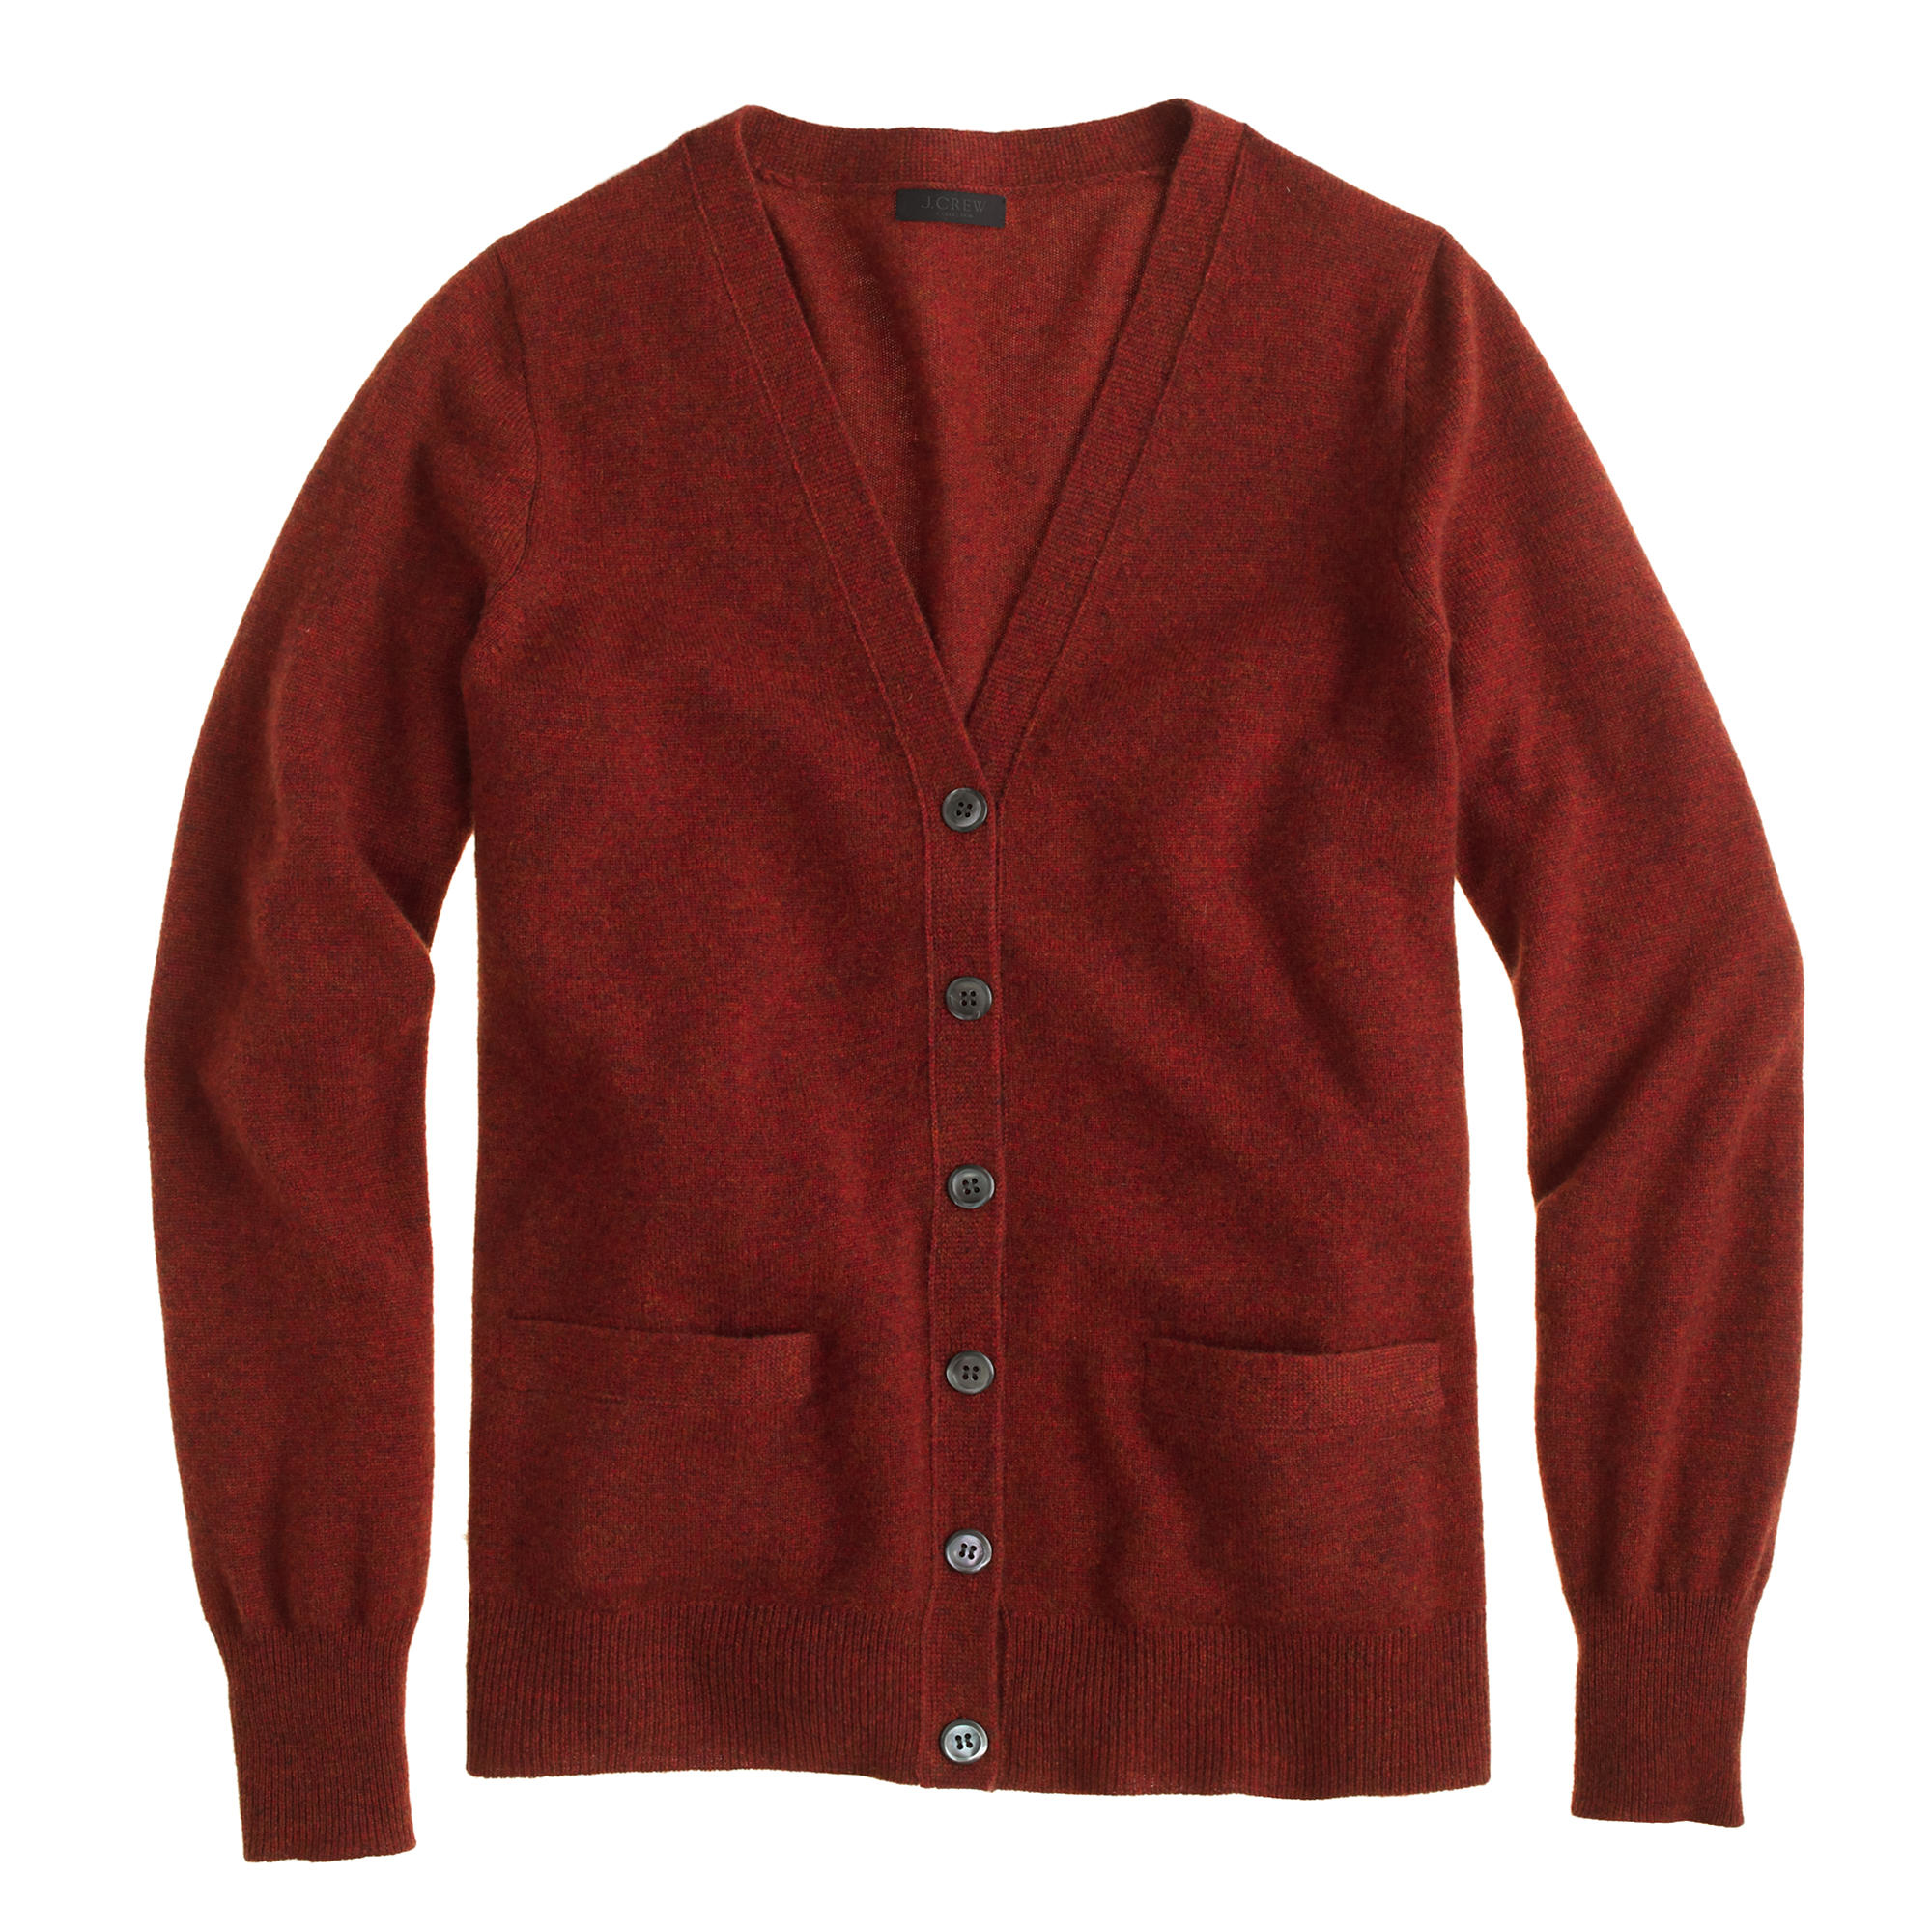 J.crew Collection Cashmere Boyfriend Cardigan Sweater in Red | Lyst